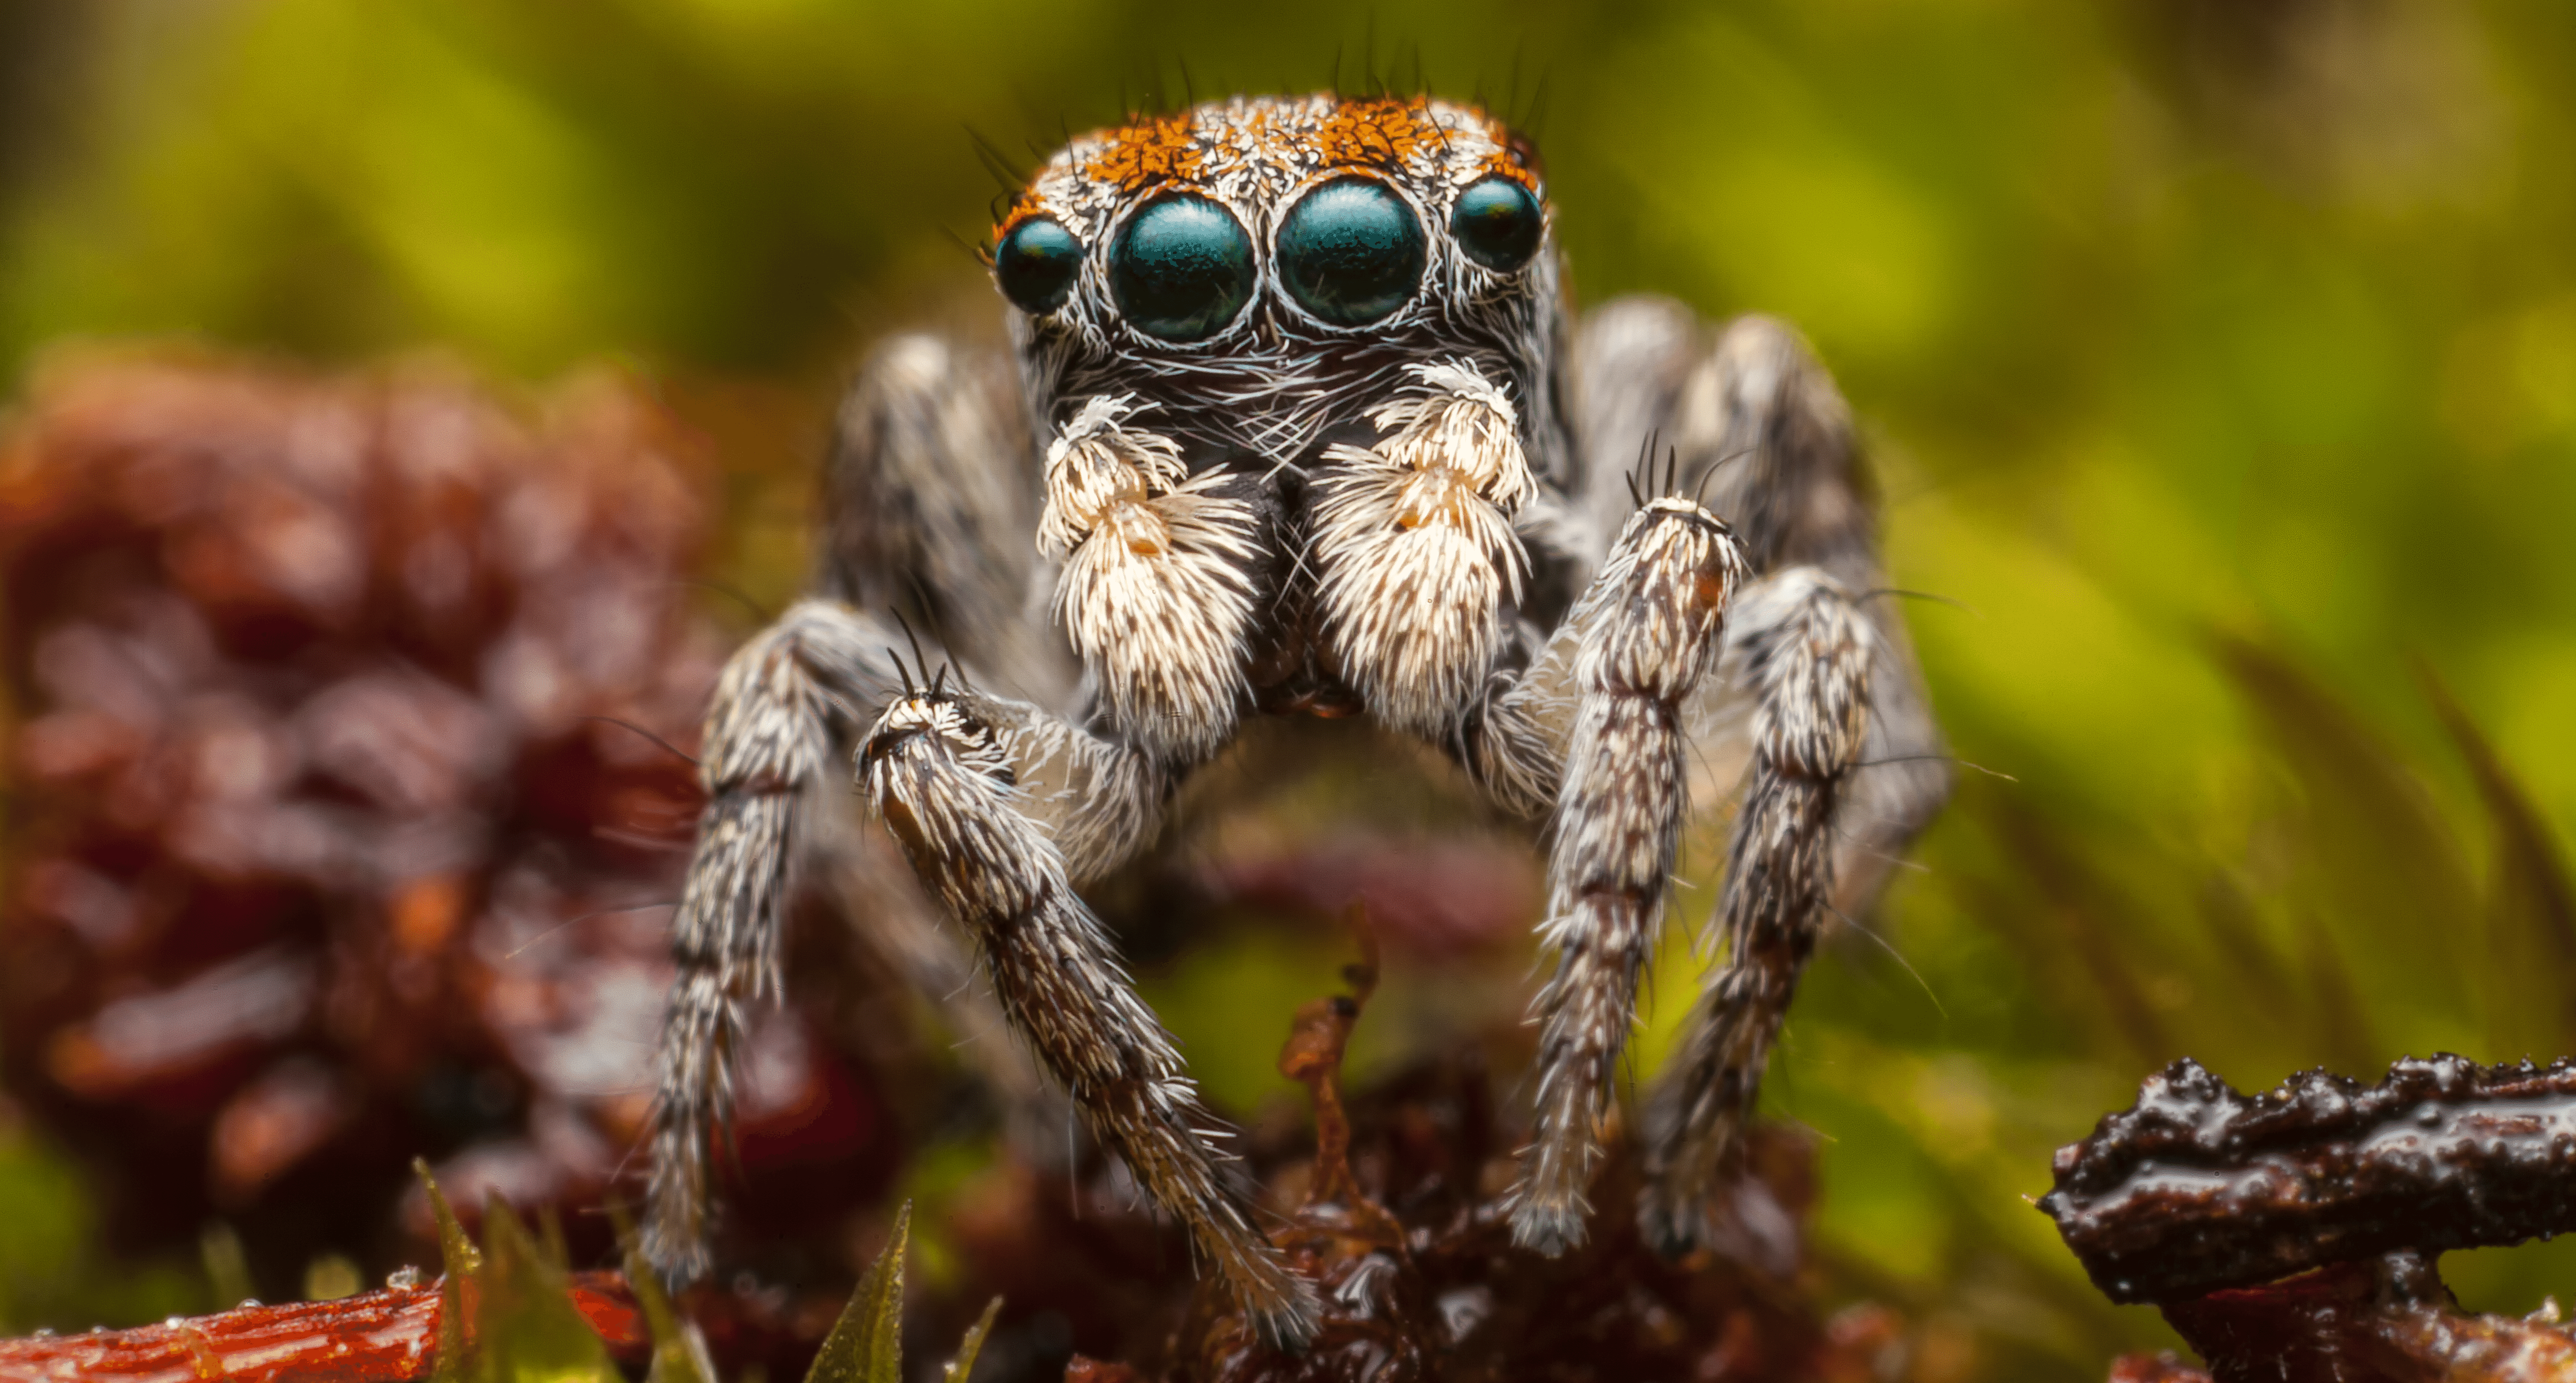 This spider's exoskeleton looks like a helmet for a very tiny alien